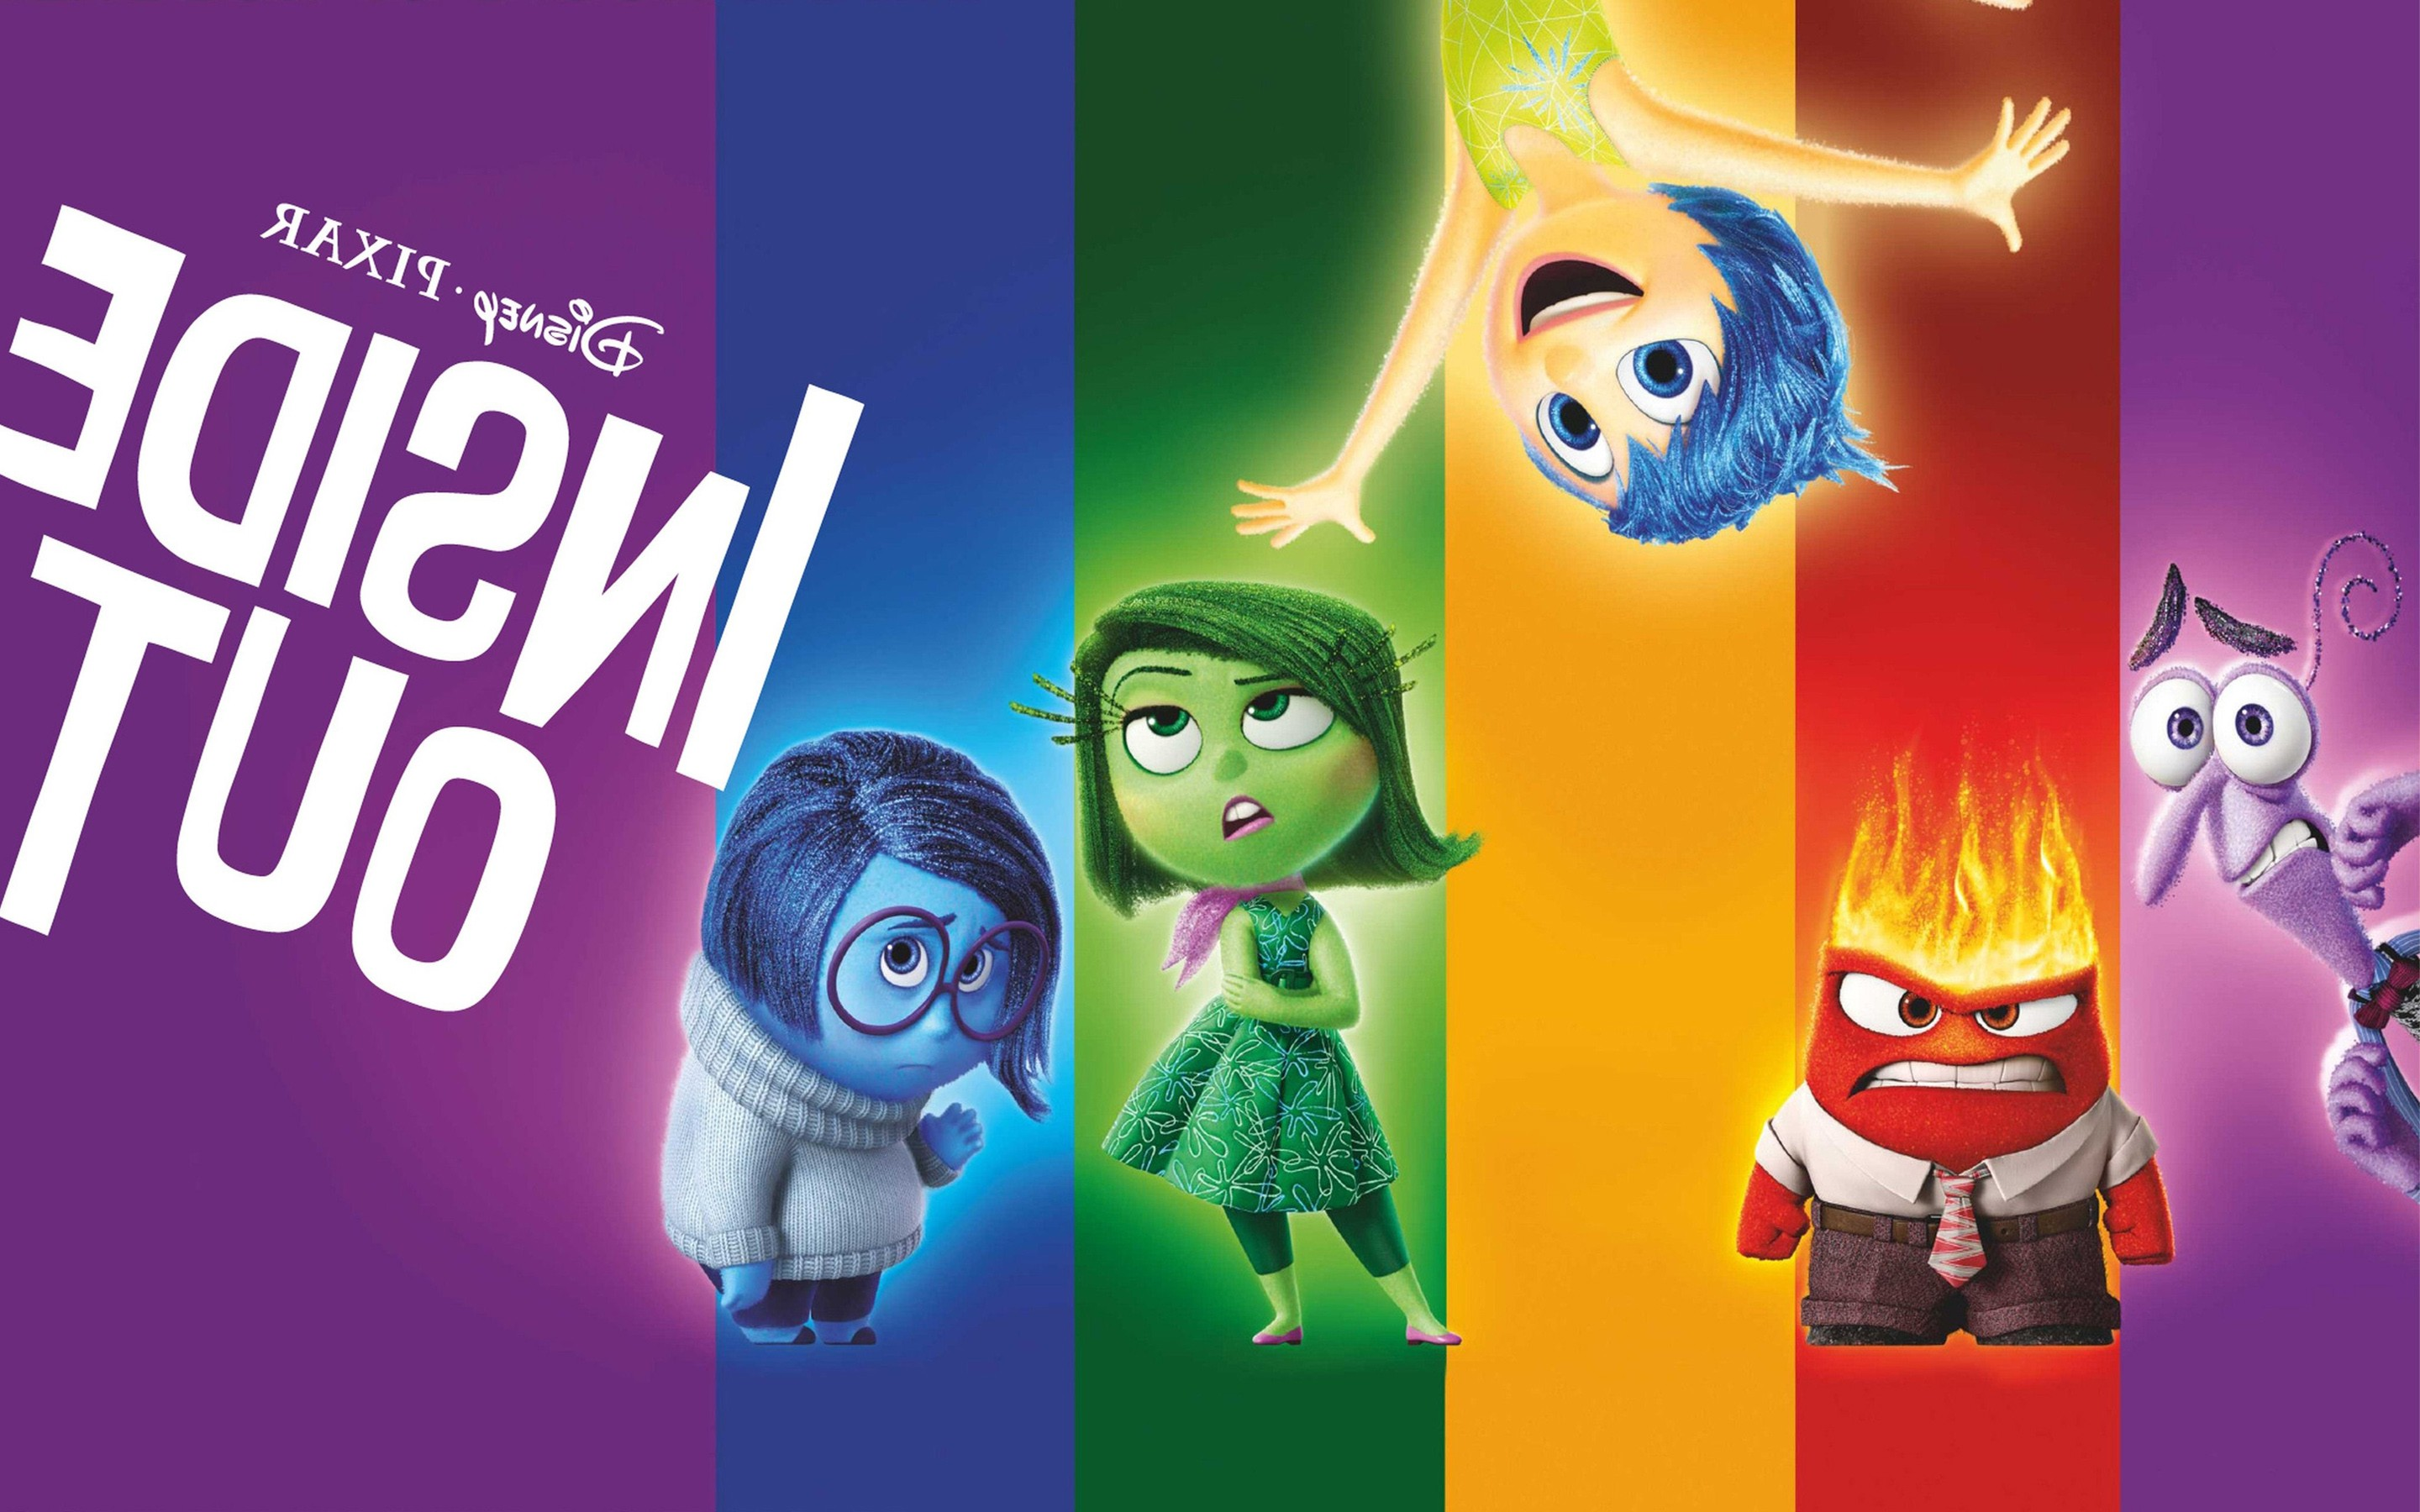 1280x2120 Inside Out Anger 2015 Iphone 6 Hd 4k Wallpapers Images Backgrounds Photos And Pictures